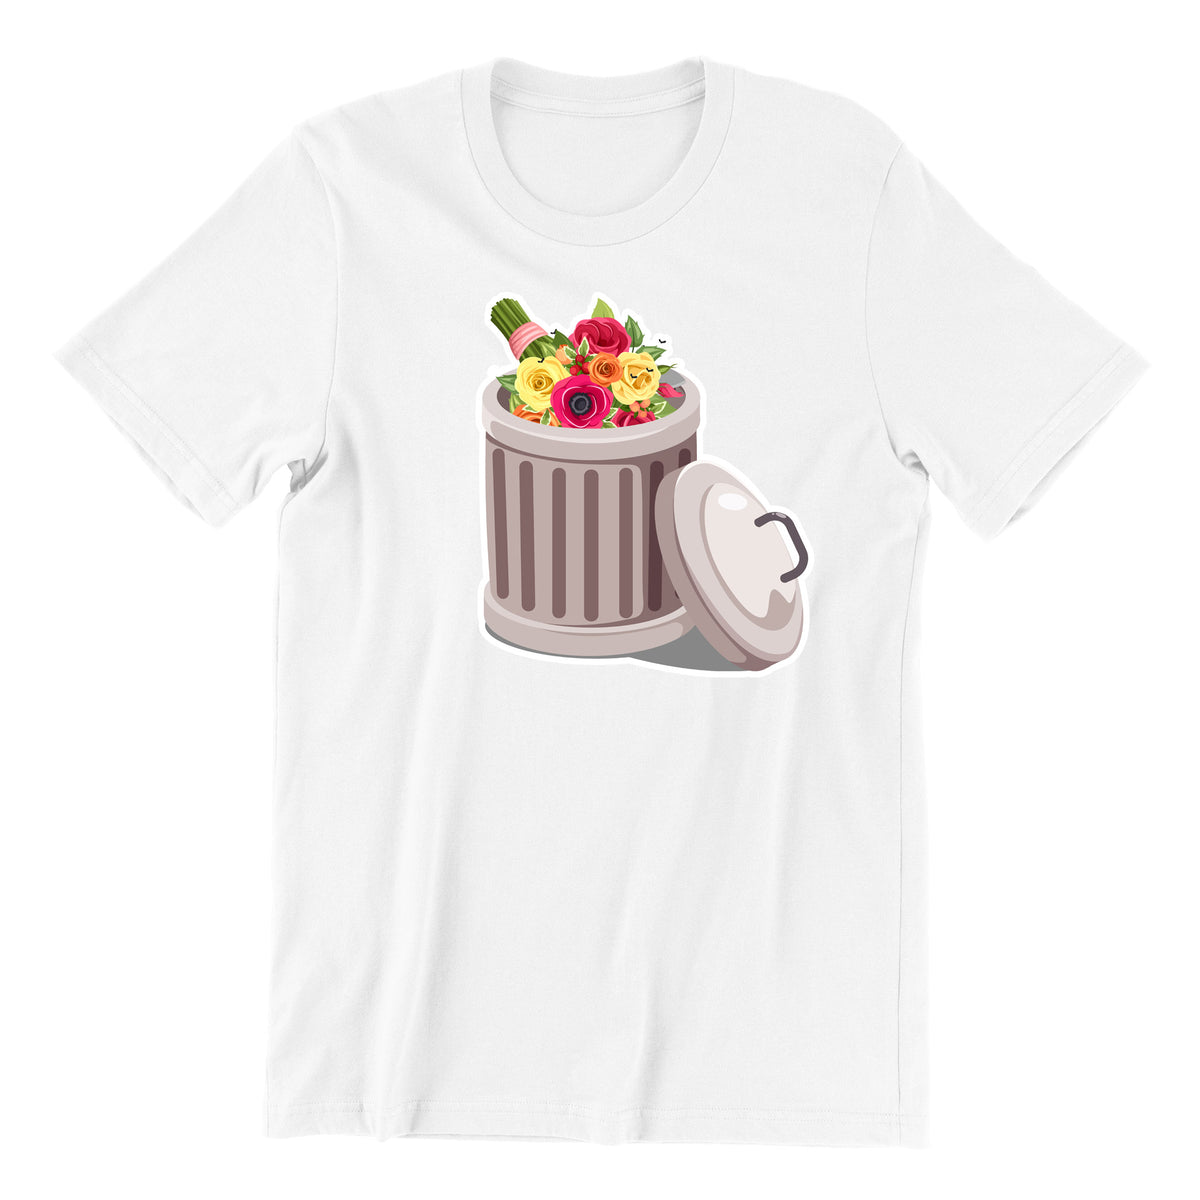 Trashed Short Sleeve T-shirt